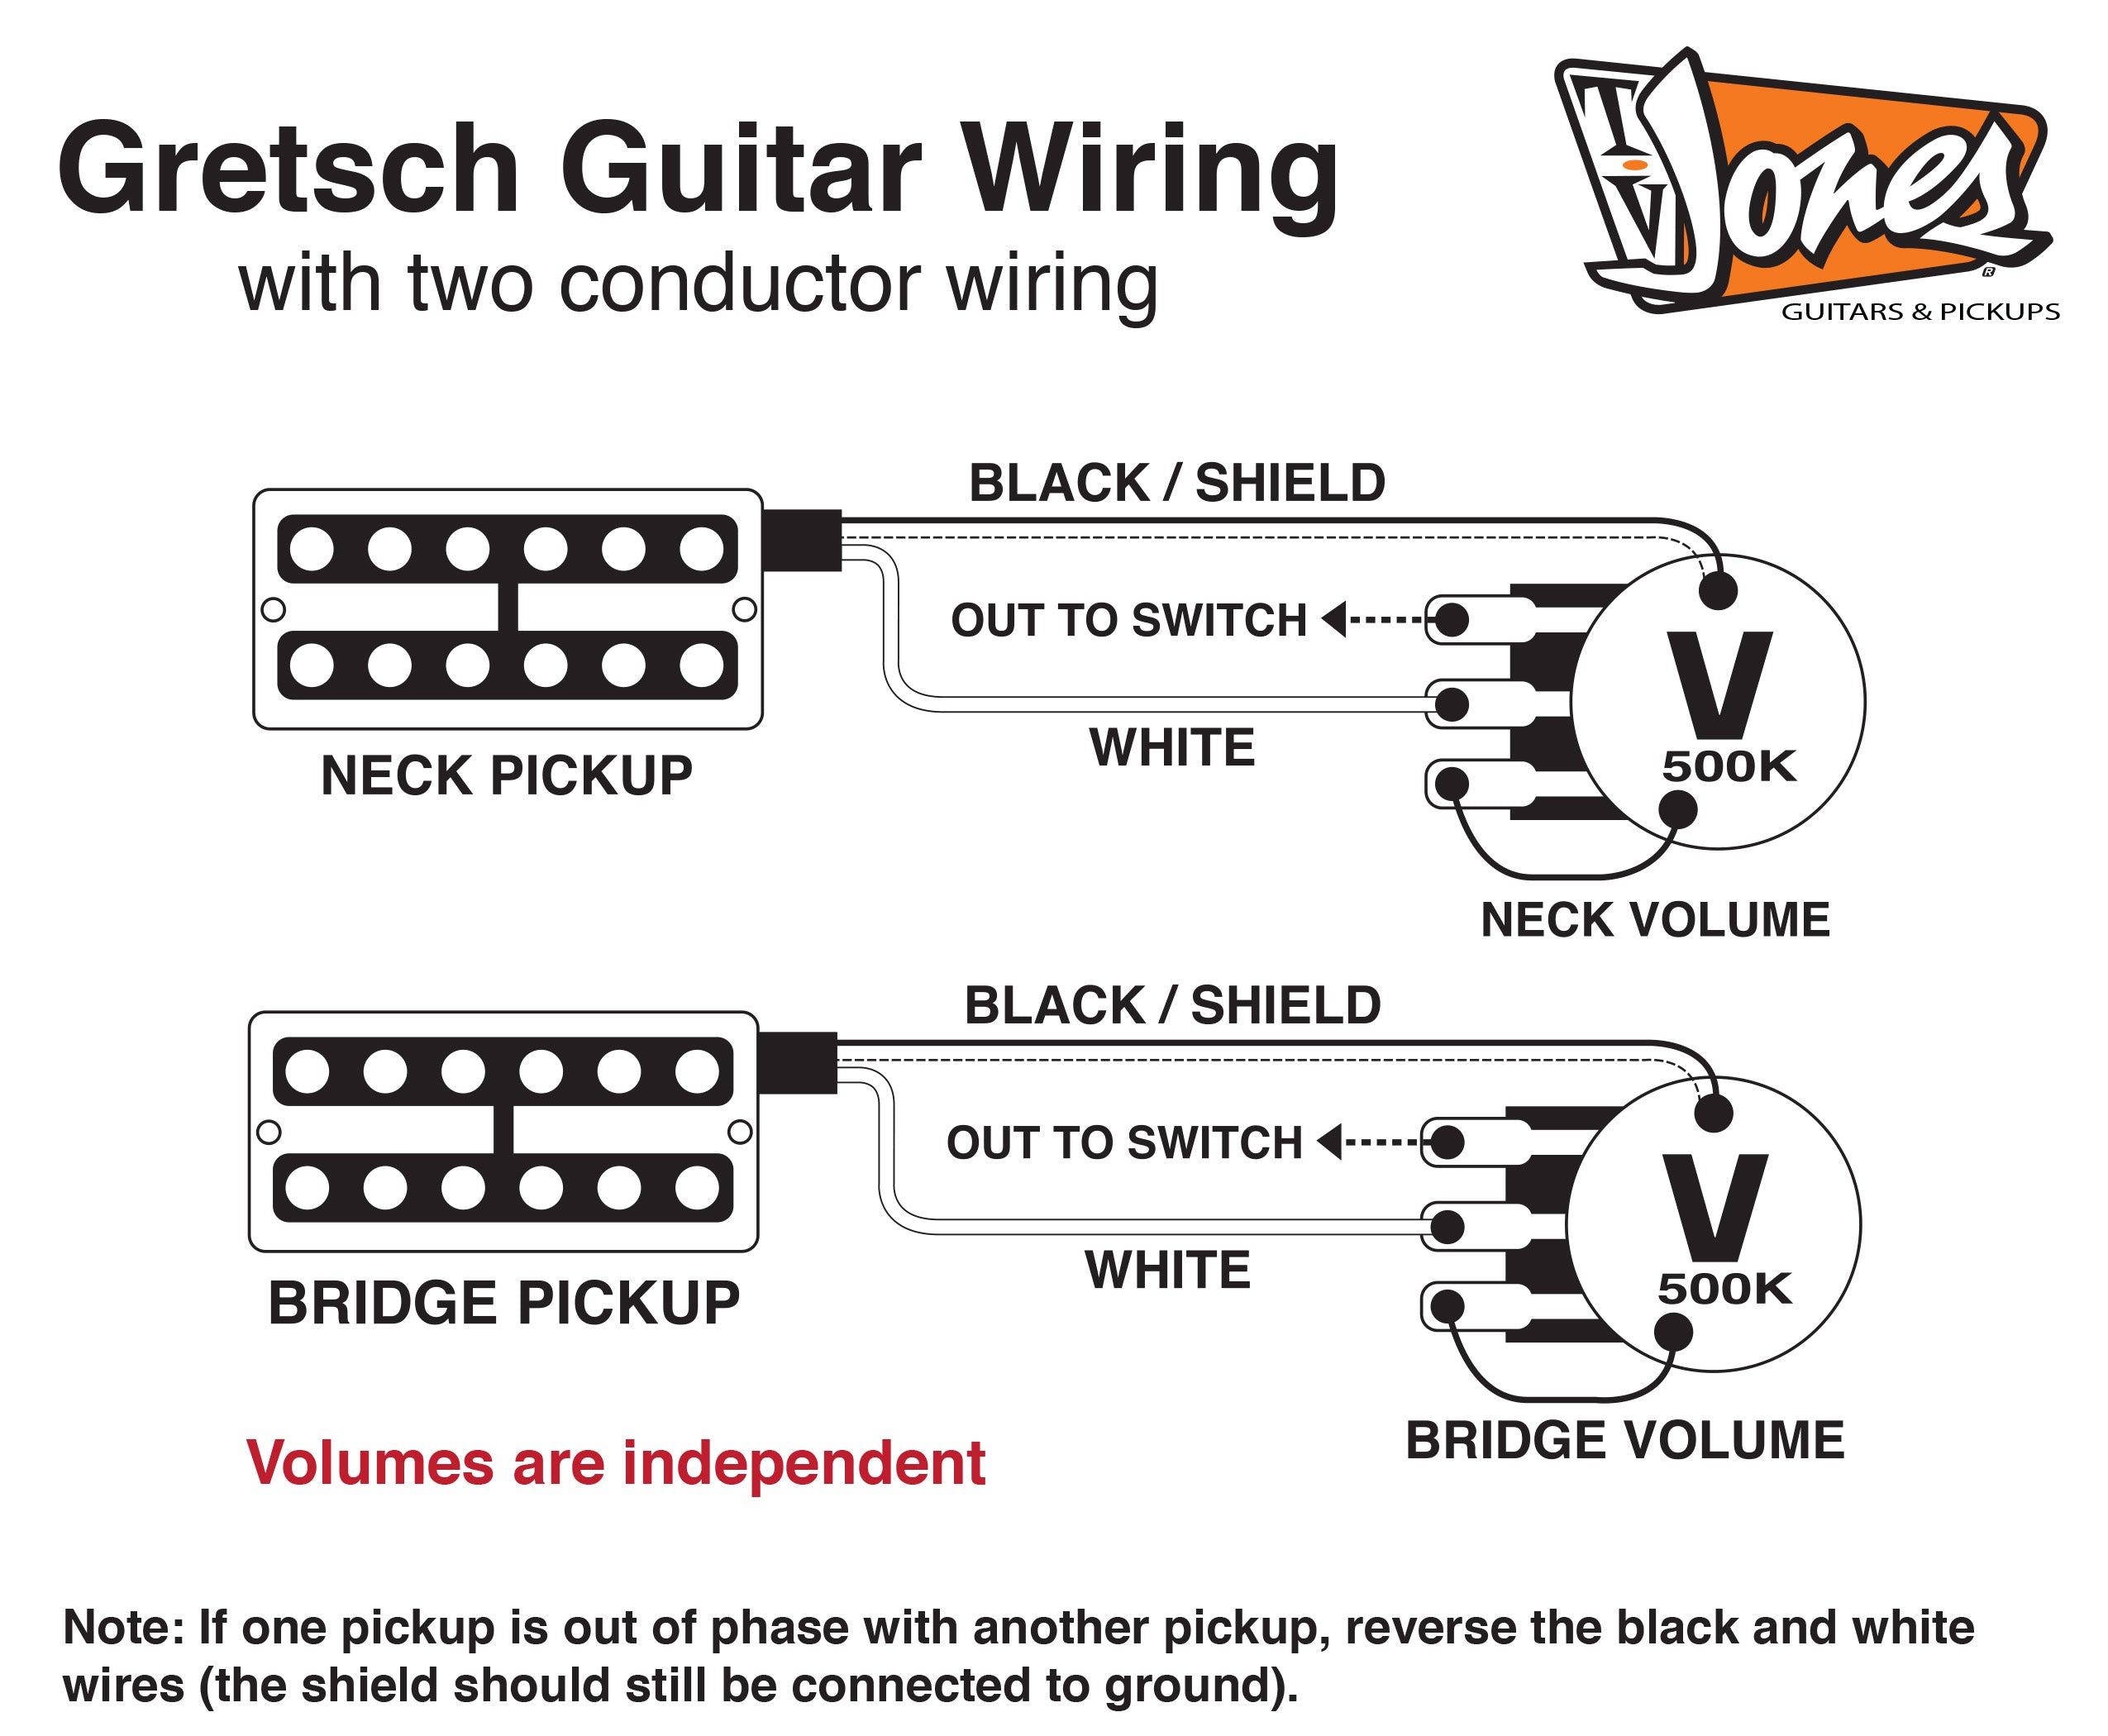 Wiring Diagram For Gretsch | Wiring Diagram on dean ml wiring diagram, gator wiring diagram, johnson wiring diagram, silvertone wiring diagram, fishman wiring diagram, korg wiring diagram, gibson wiring diagram, stratocaster wiring diagram, taylor wiring diagram, musicman wiring diagram, mosrite wiring diagram, jackson wiring diagram, hagstrom wiring diagram, duncan performer wiring diagram, manufacturing wiring diagram, kurzweil wiring diagram, hamer wiring diagram, harmony wiring diagram, michael kelly wiring diagram, dimarzio wiring diagram,